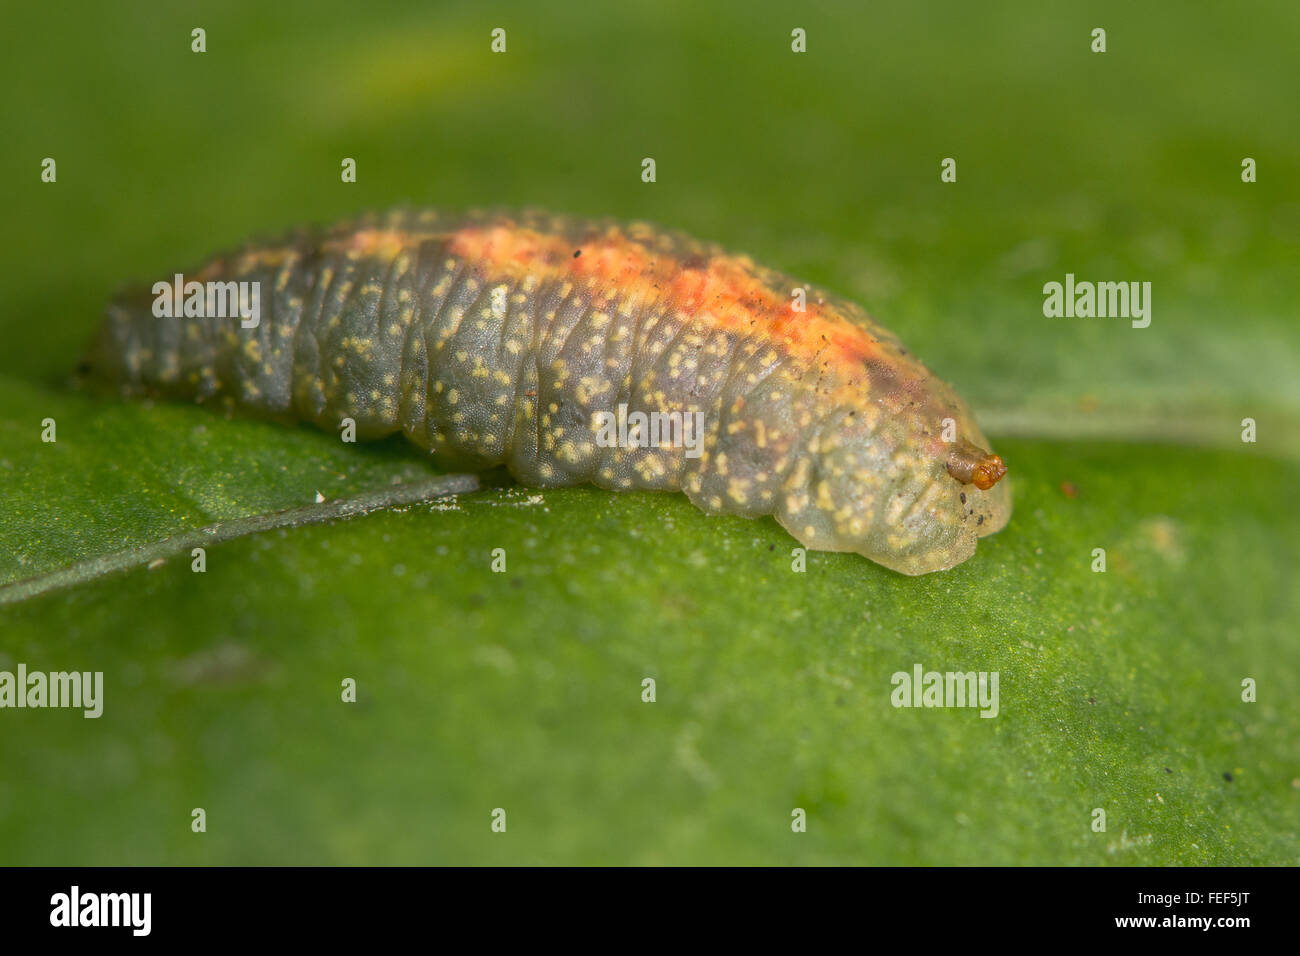 Hoverfly larva respiratory processes. A larva of a hoverfly in the family Syrphidae, with posterior respiratory - Stock Image